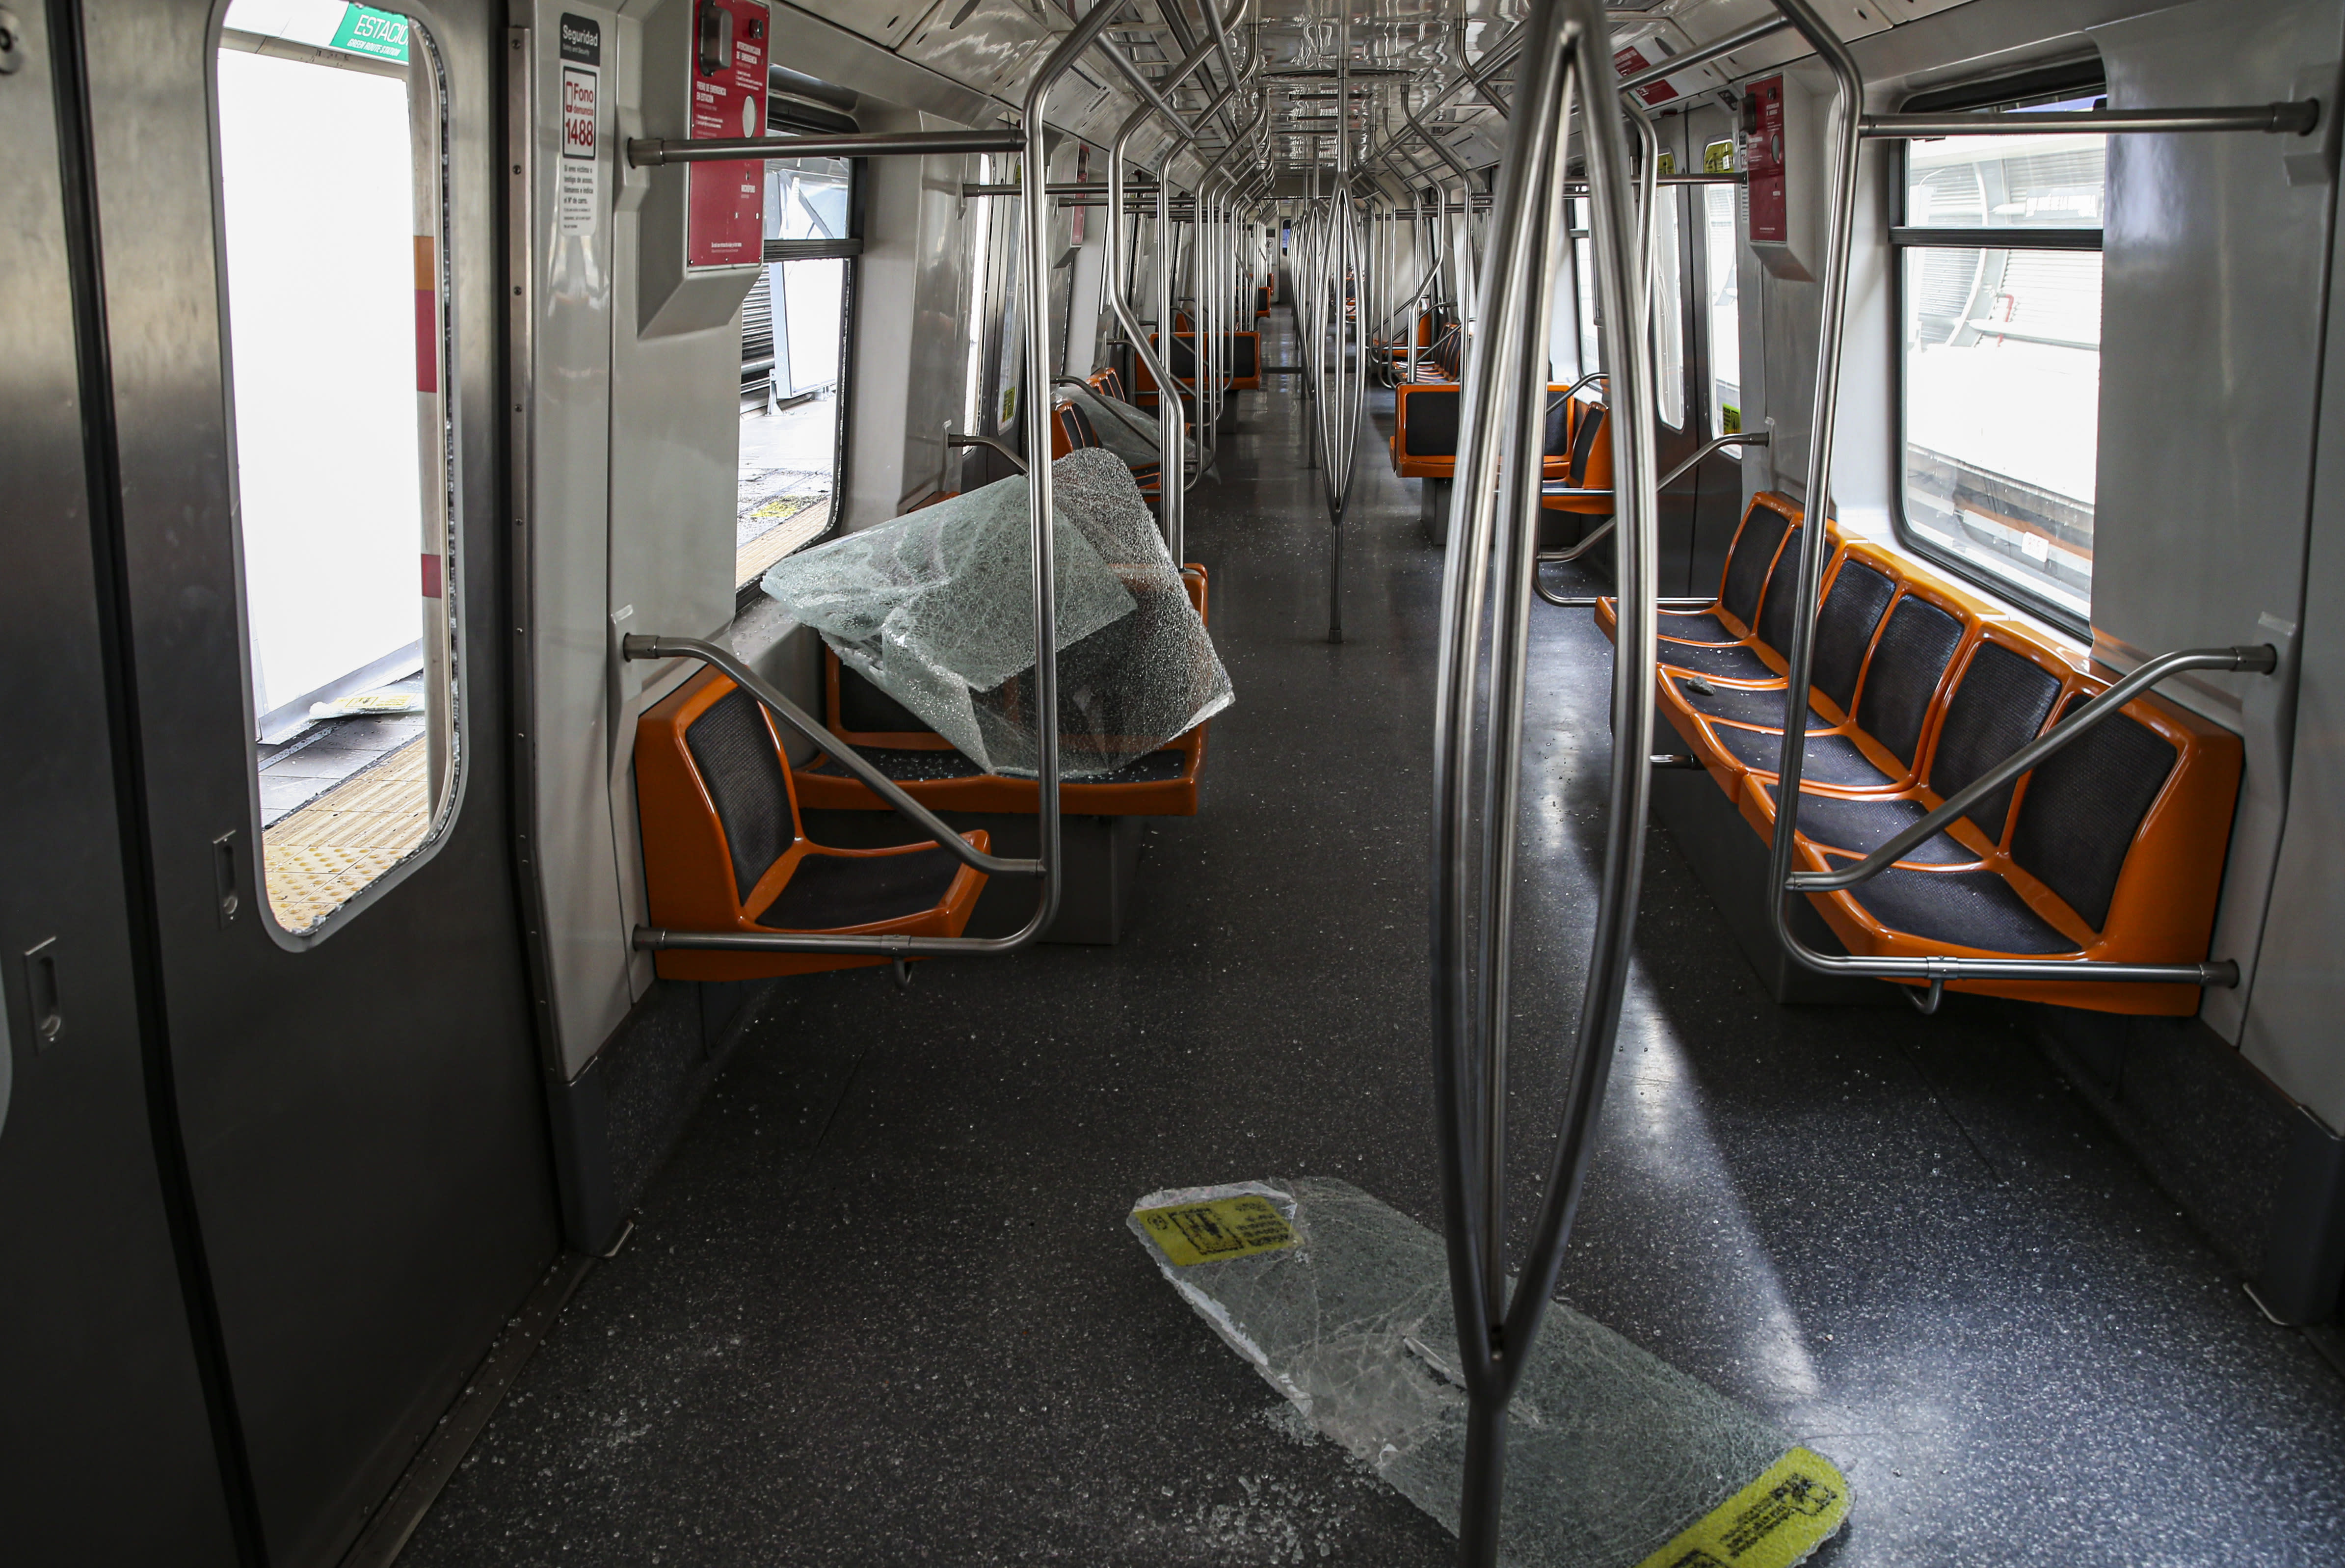 The destroyed windows of a subway car lay on the floor during a protest in Santiago, Chile, Saturday, Oct. 19, 2019. The protests started on Friday afternoon when high school students flooded subway stations, jumping turnstiles, dodging fares and vandalizing stations as part of protests against a fare hike, but by nightfall had extended throughout Santiago with students setting up barricades and fires at the entrances to subway stations. (AP Photo/Esteban Felix)